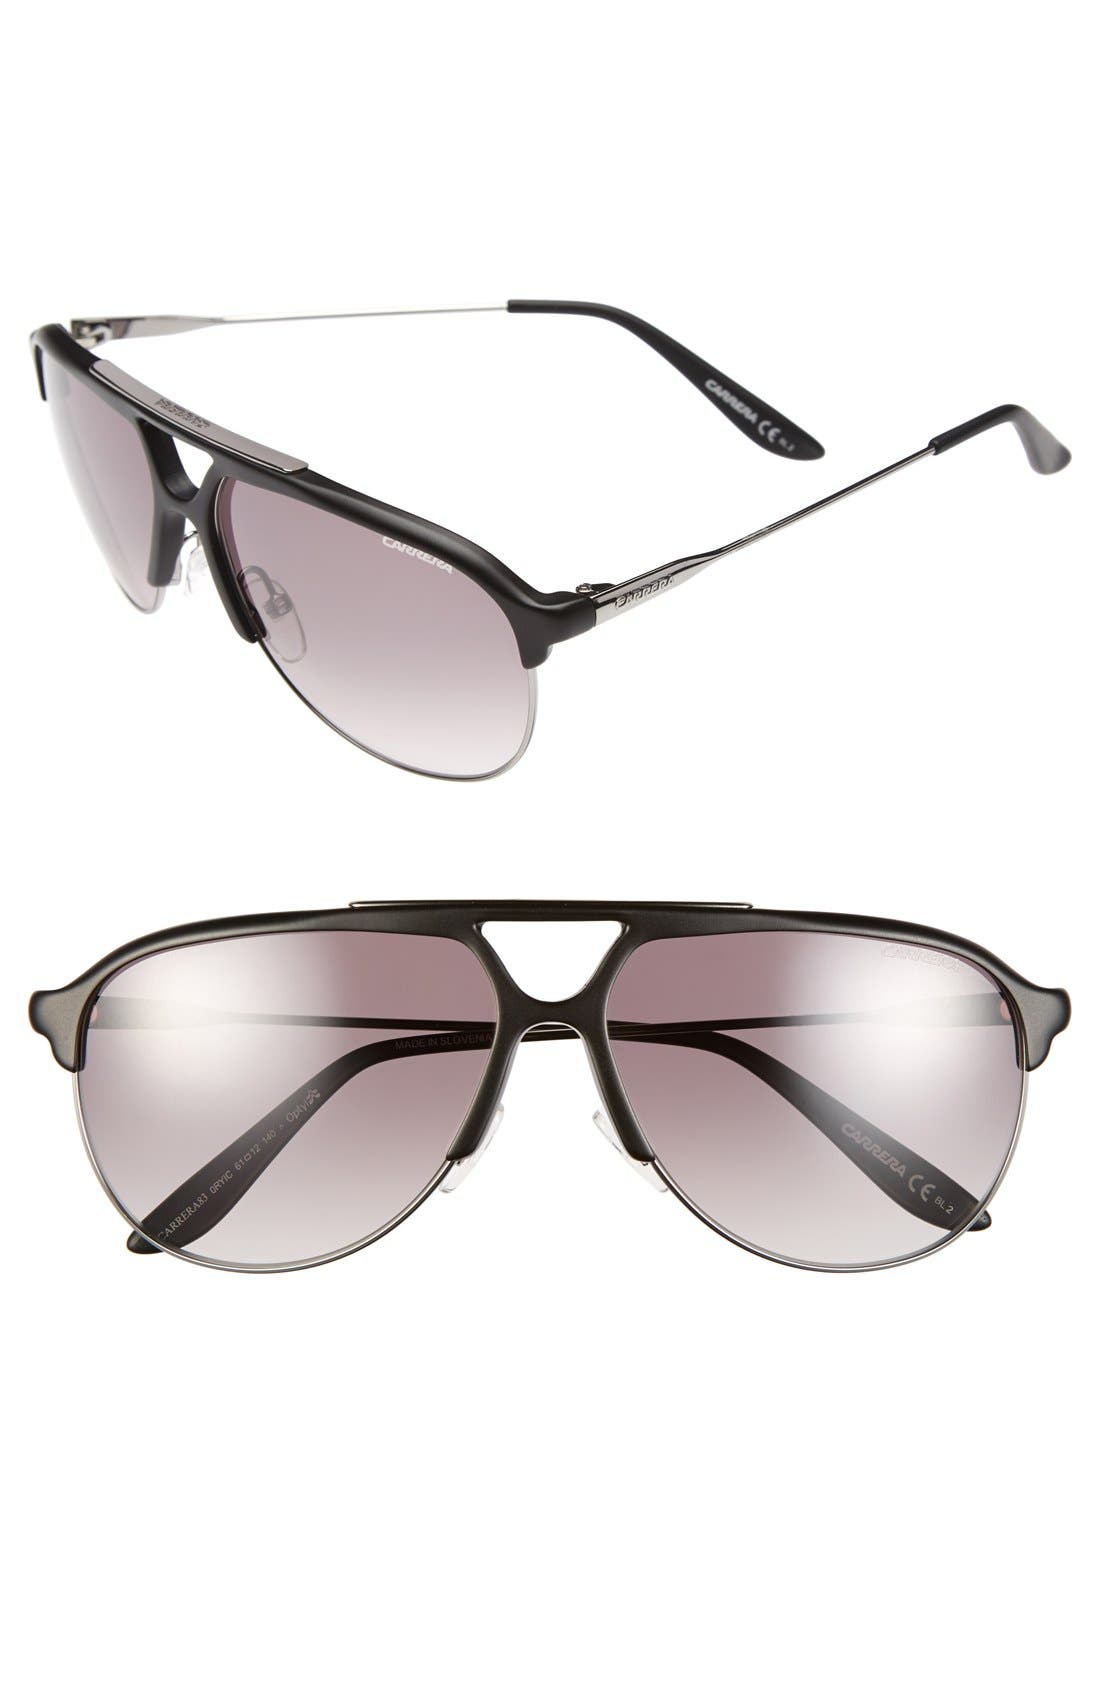 61mm Sunglasses,                             Main thumbnail 1, color,                             Ruthenium